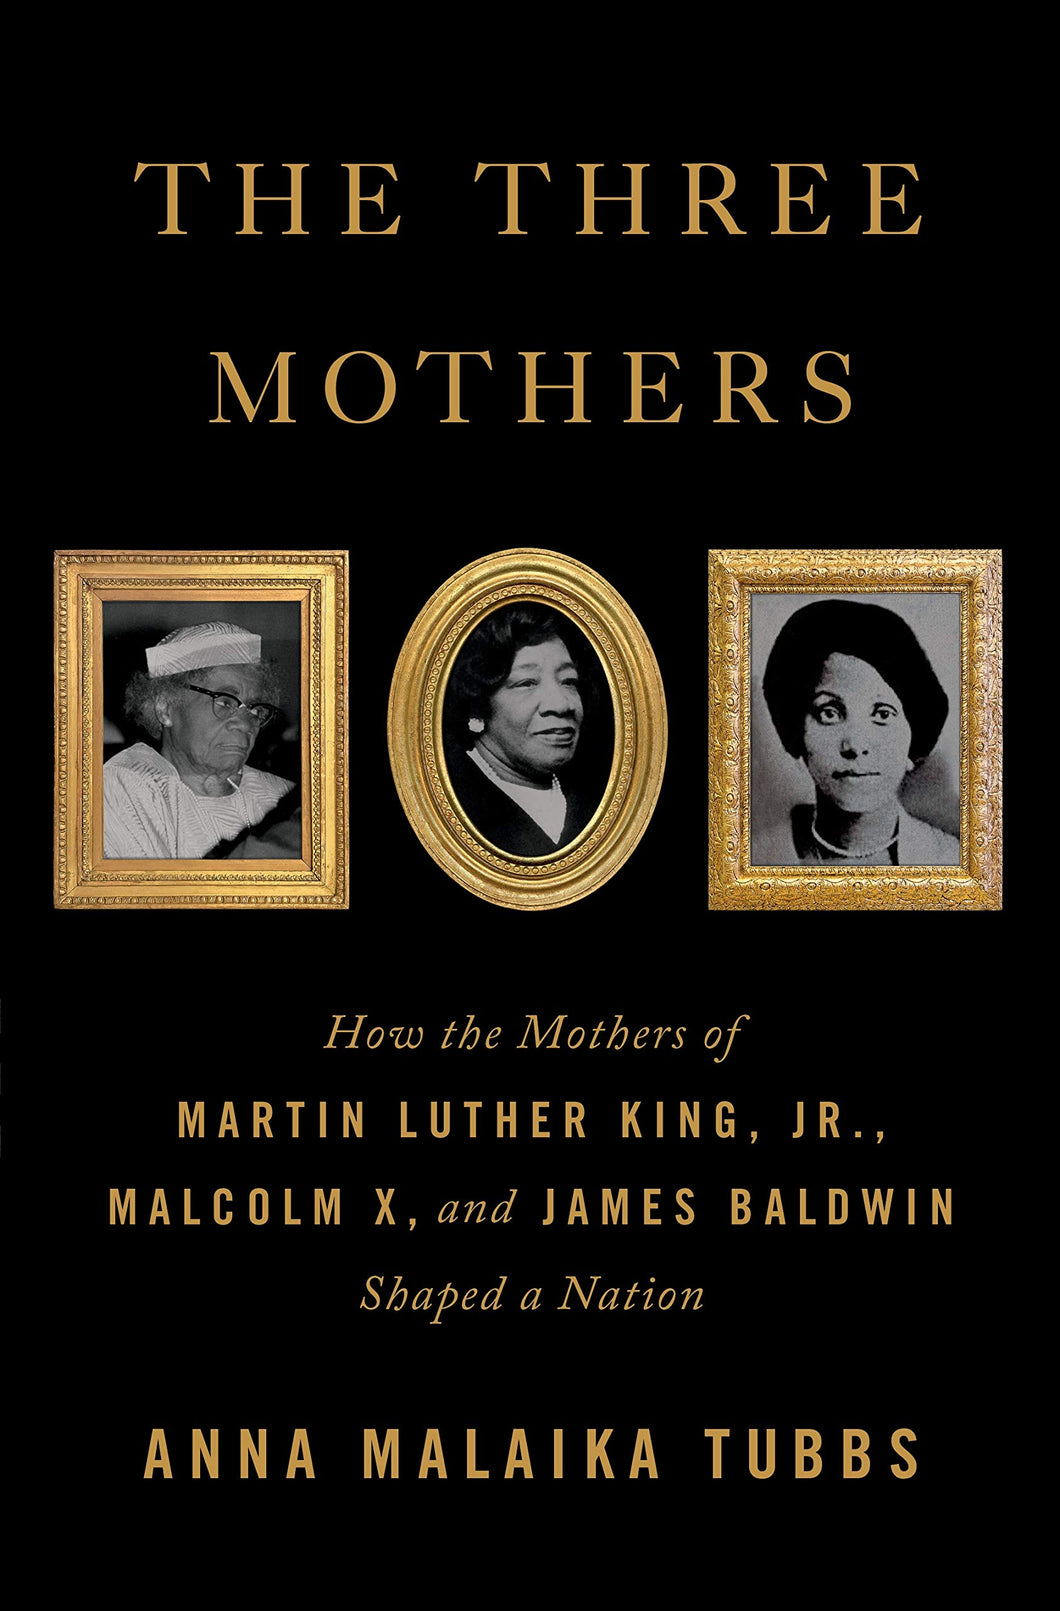 The Three Mothers: How the Mothers of Martin Luther King, Jr., Malcolm X, and James Baldwin Shaped a Nation (Pre-Order, Feb 2)